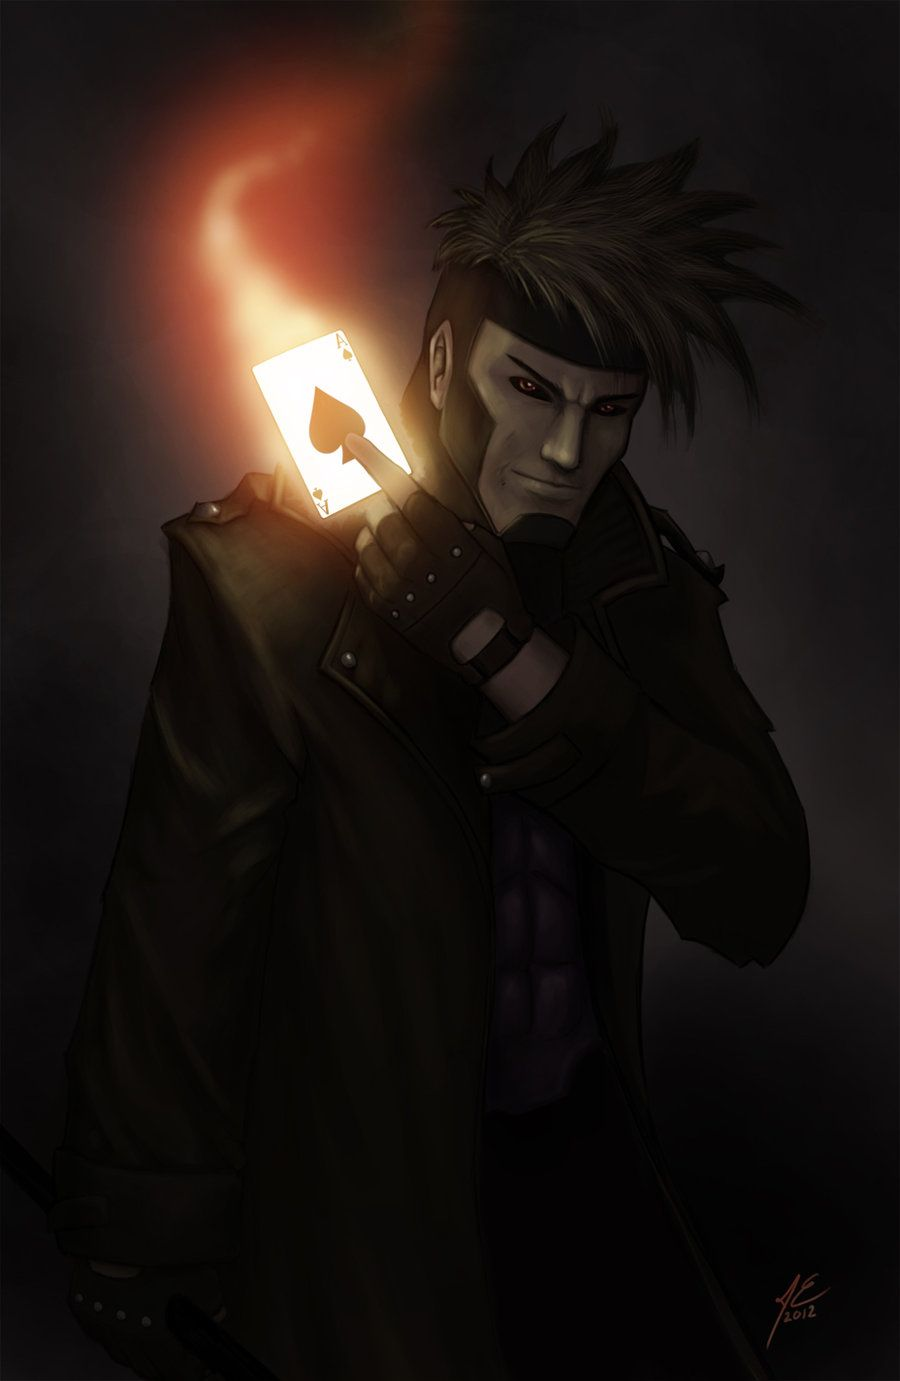 Gambit by ~fri94 on deviantART